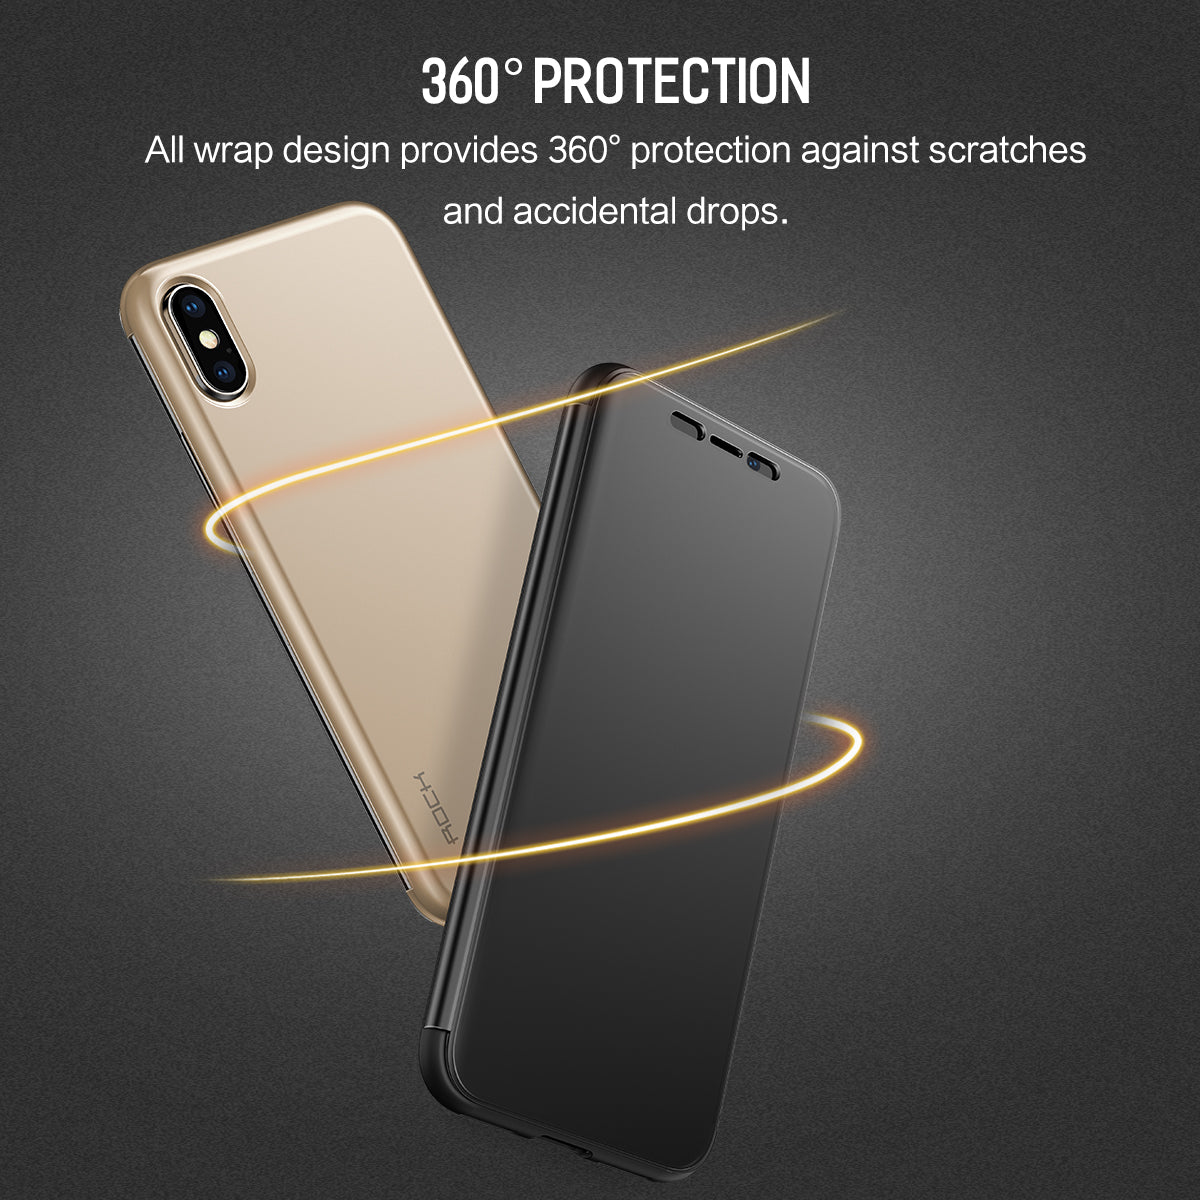 Rock Ultra Luxurious TouchScreen DR. V Slim Flip Case for iPhone X/Xs (Includes Free Back Tempered Glass)